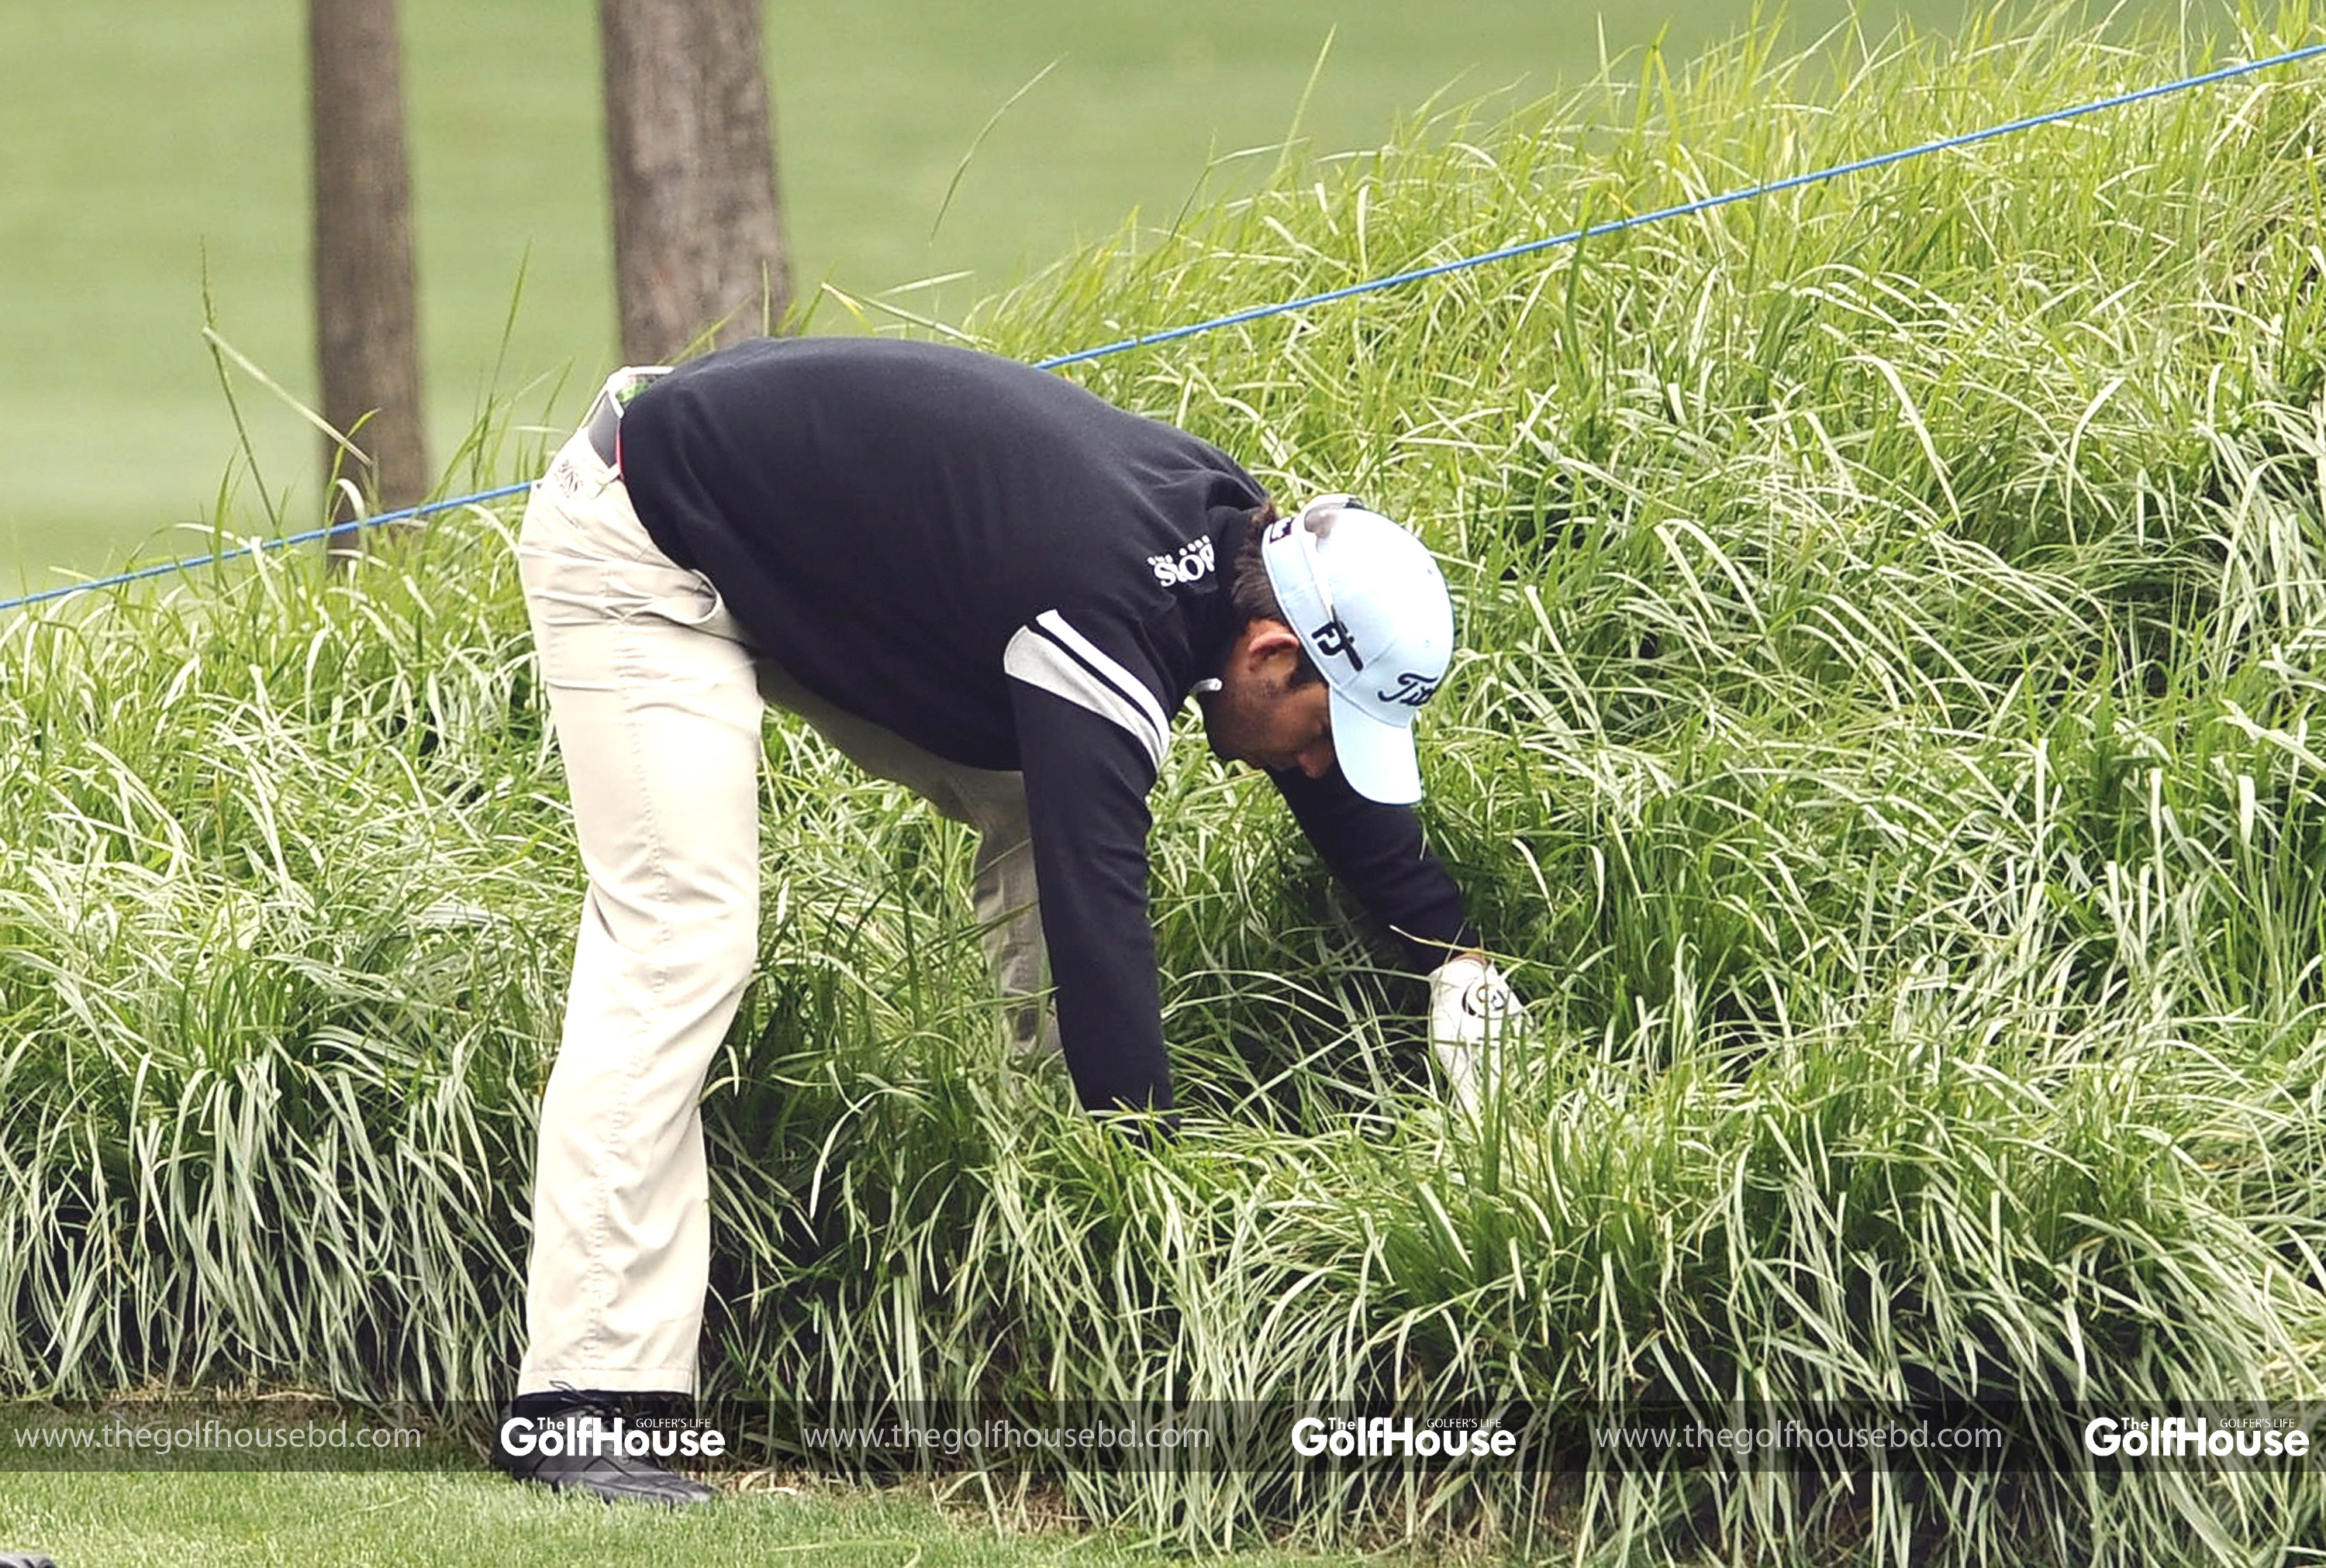 SUZHOU_CHINA _APRIL_15:_Pablo_Larrazabal_of_Spain_looks_for_a_lost_ball_on_the_18th_hole_during_the_Round_One_of_the_Volvo_China_Open_on_April_15_2010_in_Suzhou,_China._(Photo_by_Victor_Fraile/Getty_Images) *** Local_Caption *** Pablo_Larrazabal